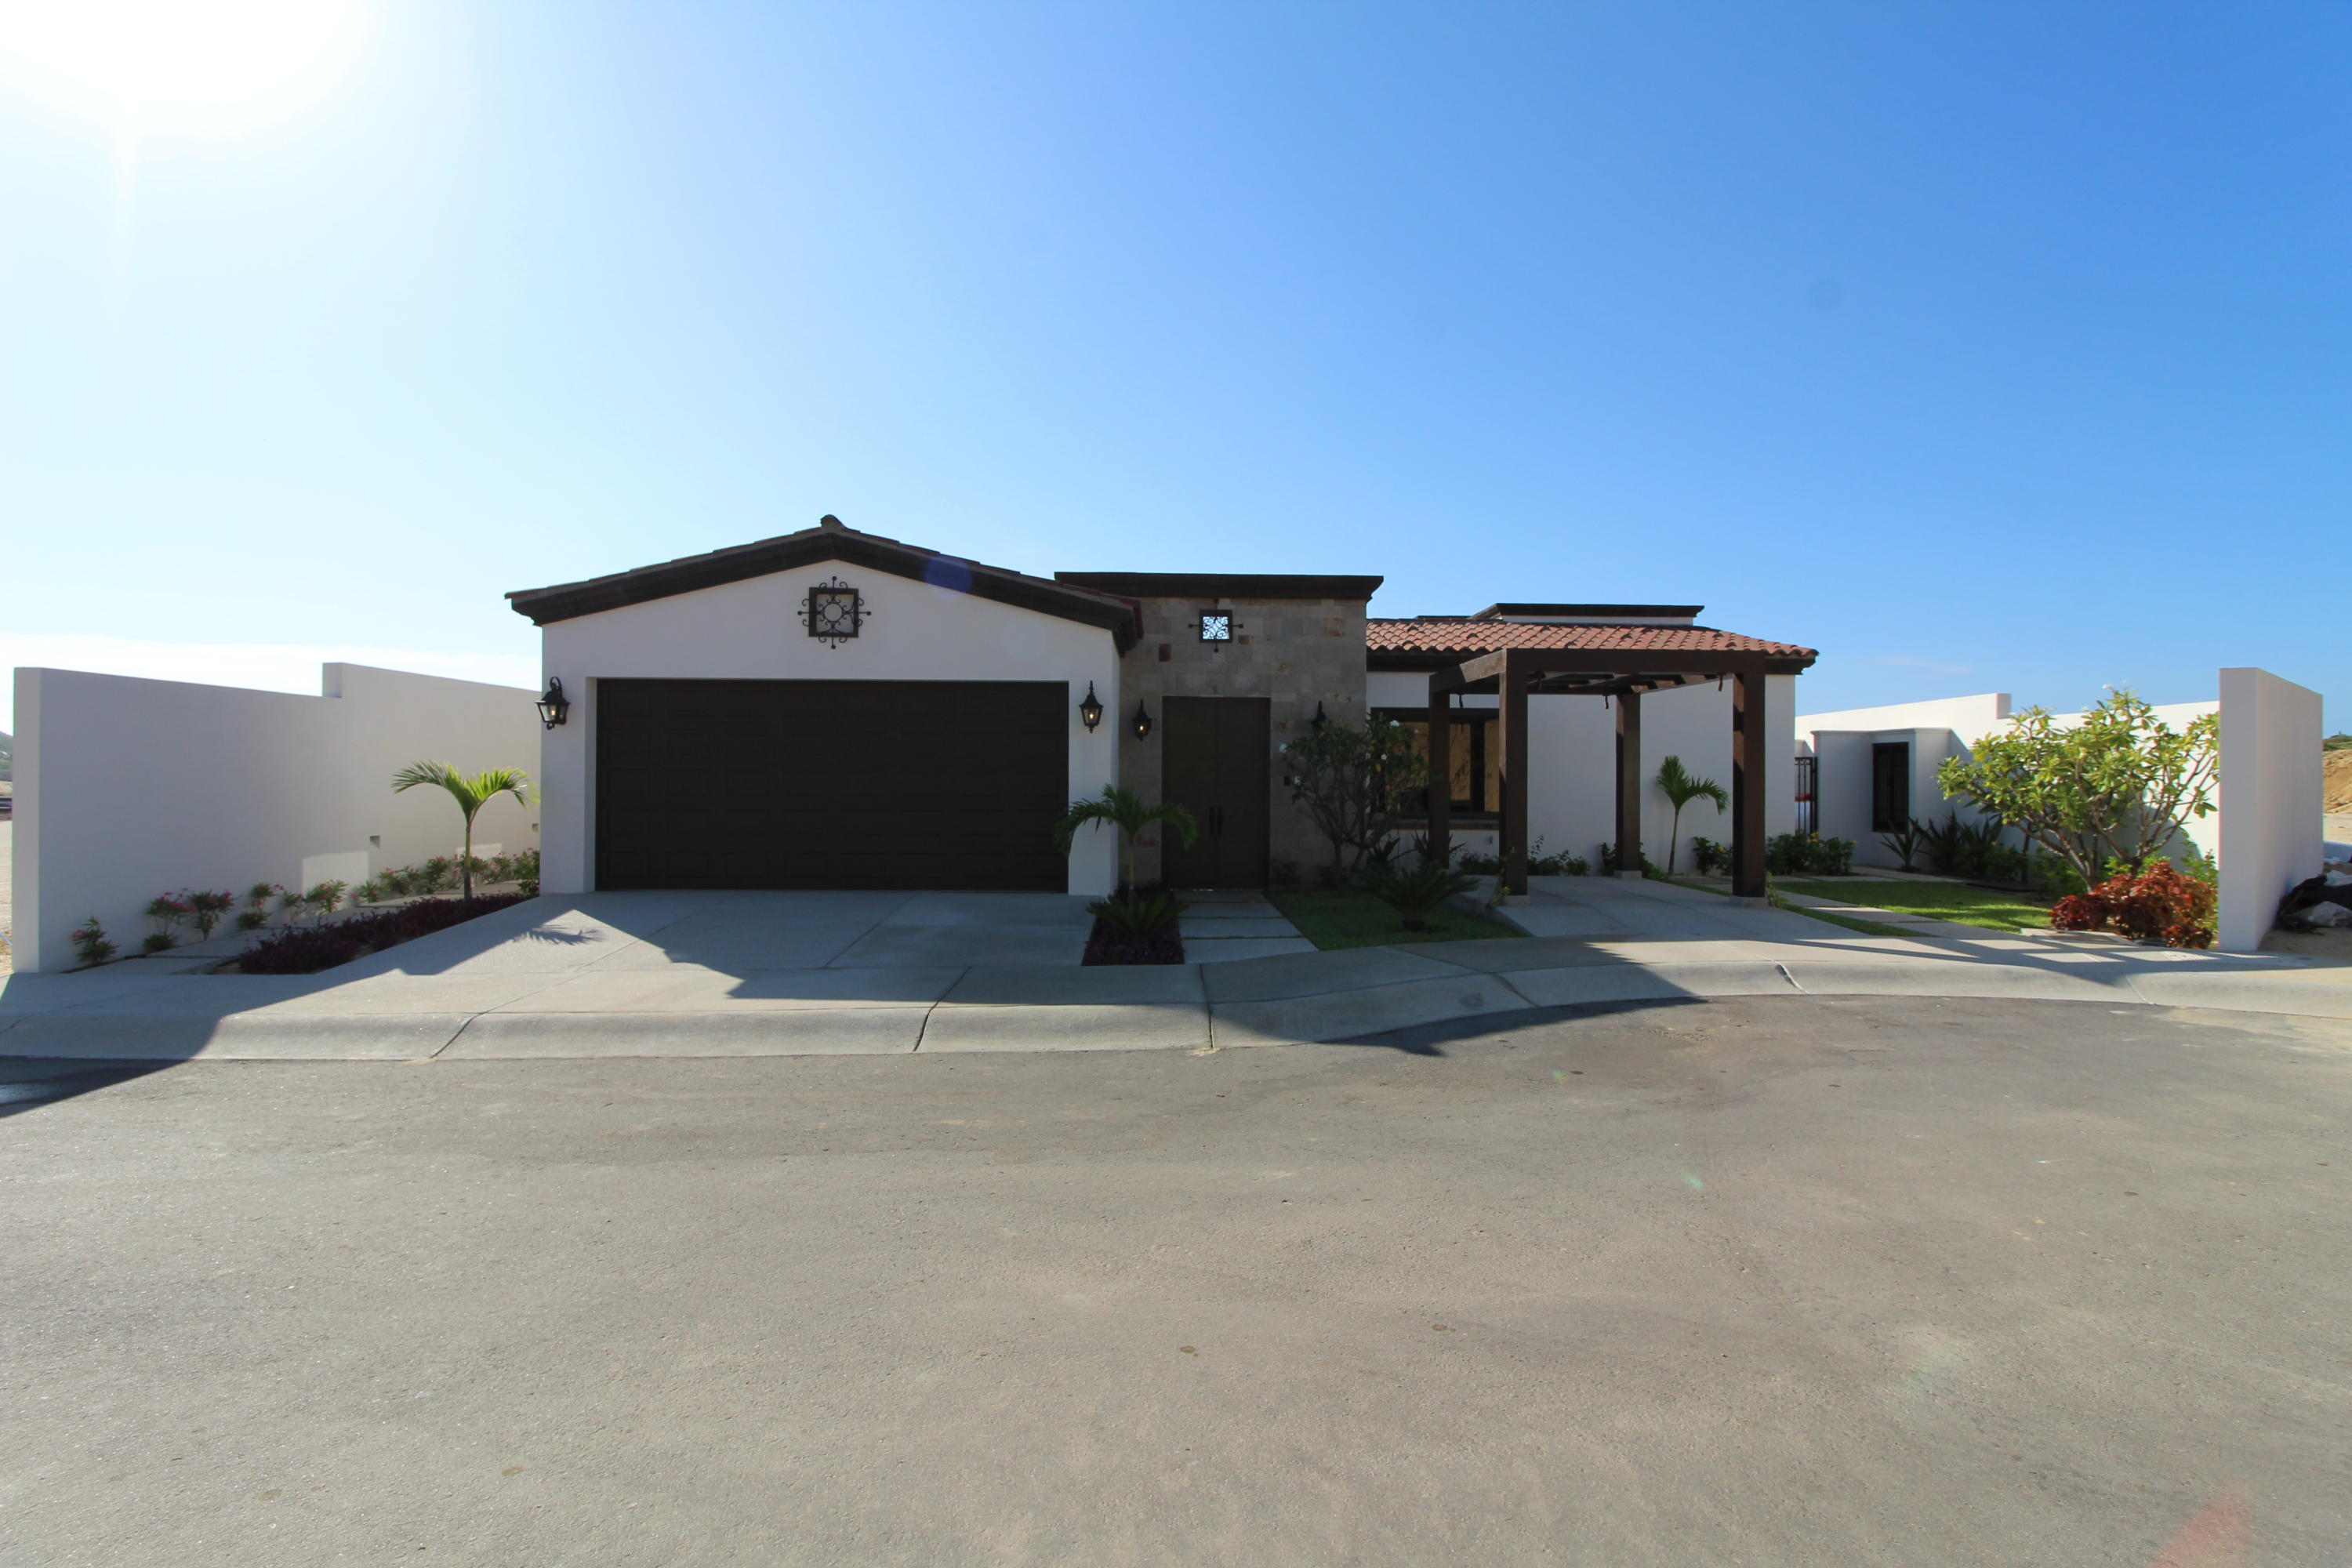 Pacific, 4 Bedrooms Bedrooms, ,4 BathroomsBathrooms,House,For Sale,Coronado at Quivira Via de,18-2140